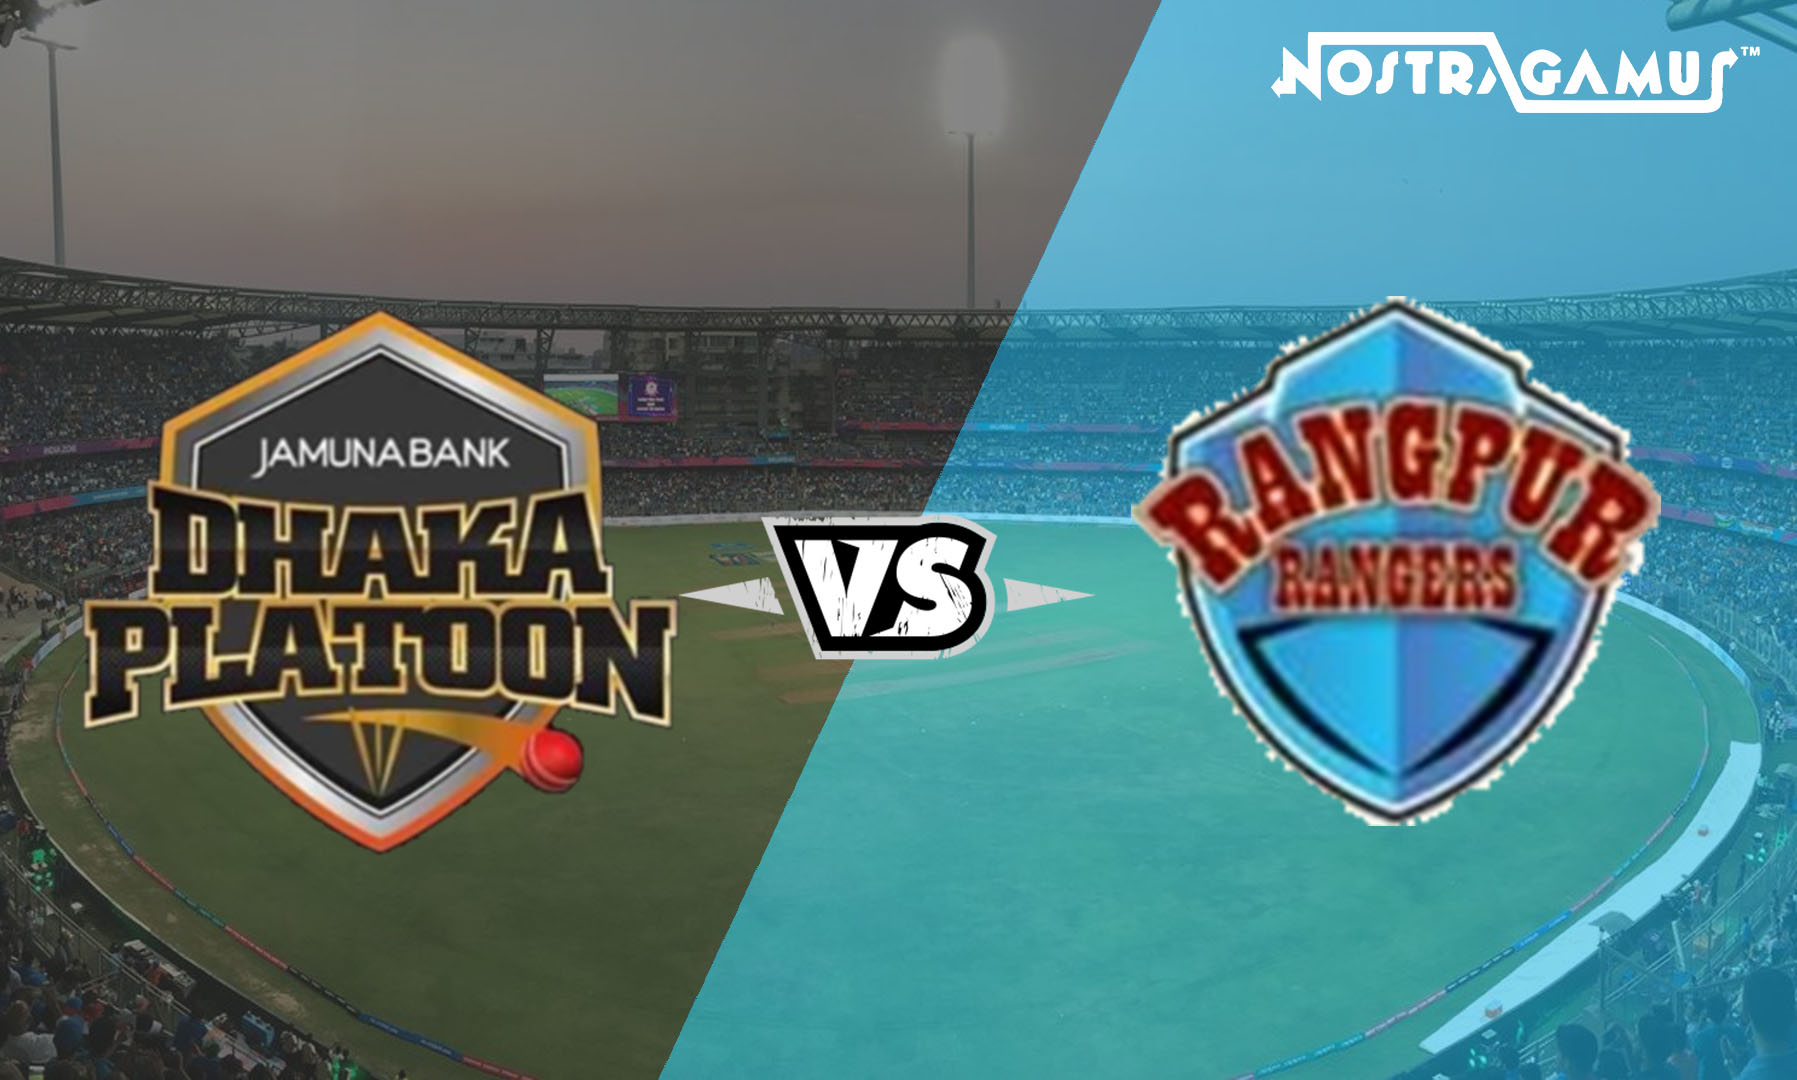 Dhaka Platoon vs Rangpur Rangers: BPL 2019 Match Prediction